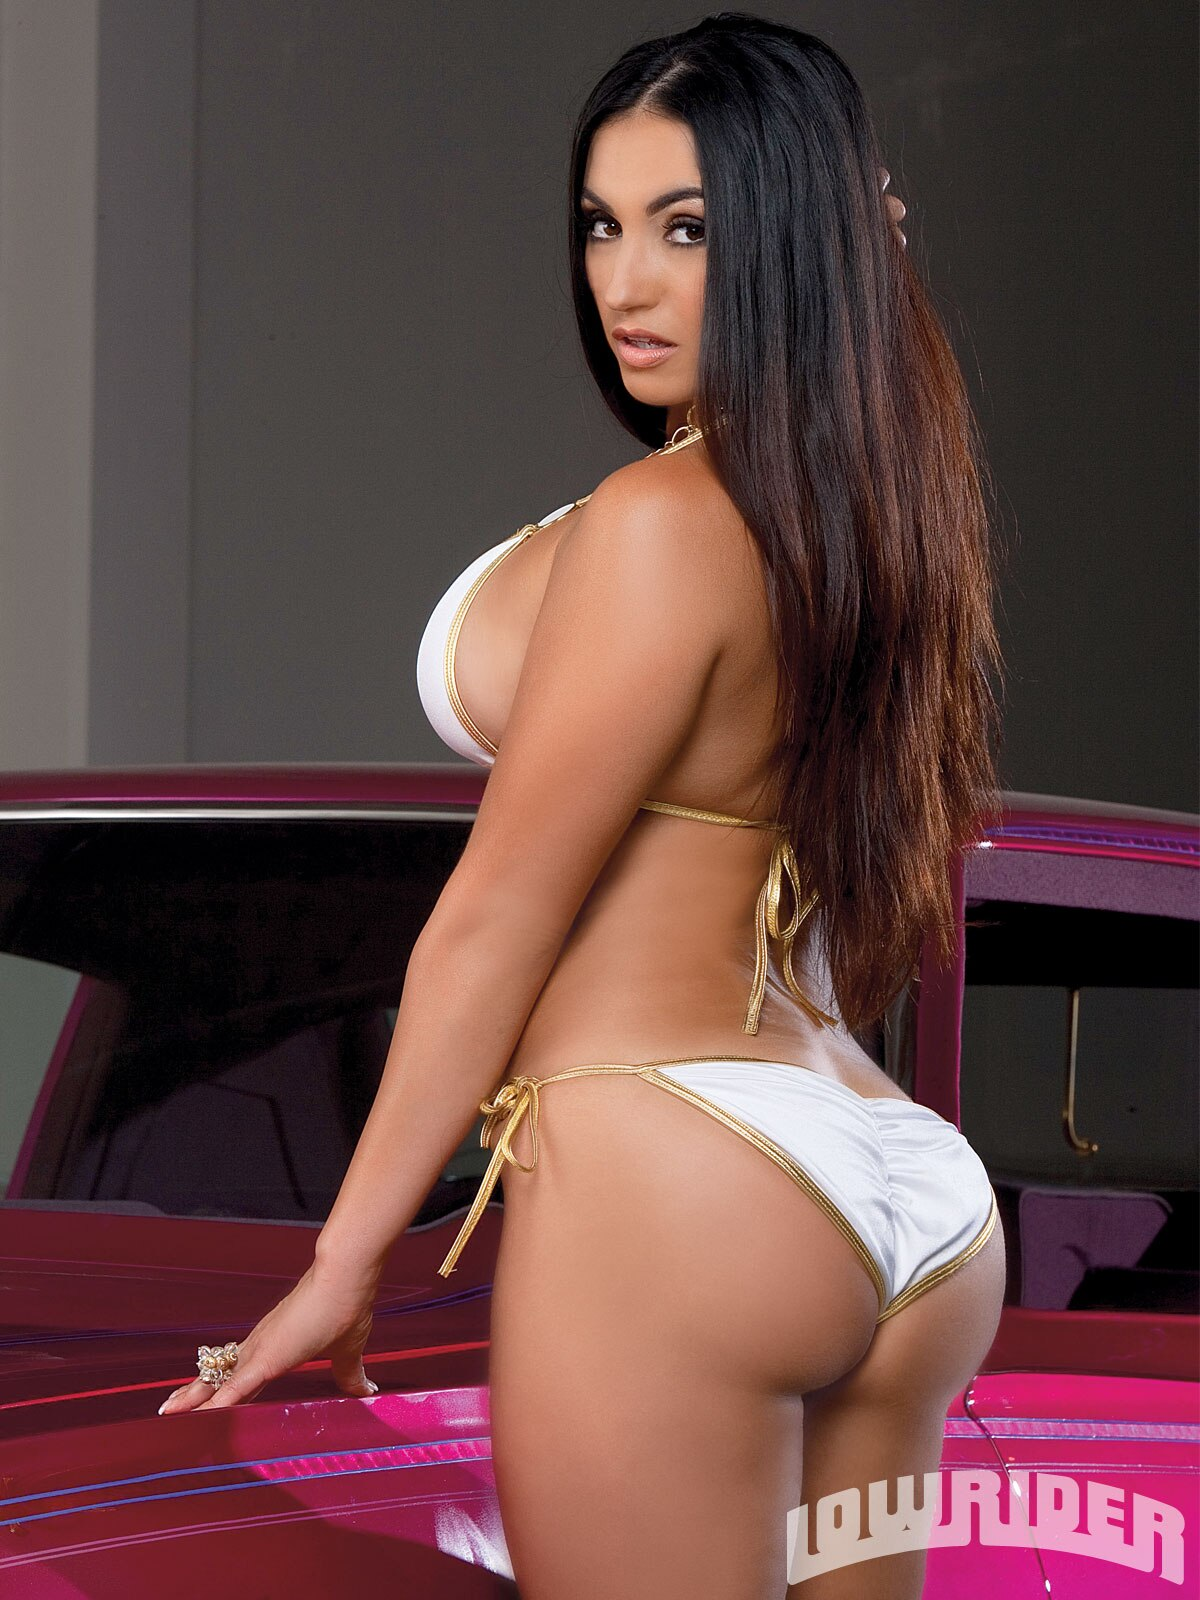 Mary - Lowrider Girls Model - Lowrider Girls Magazine